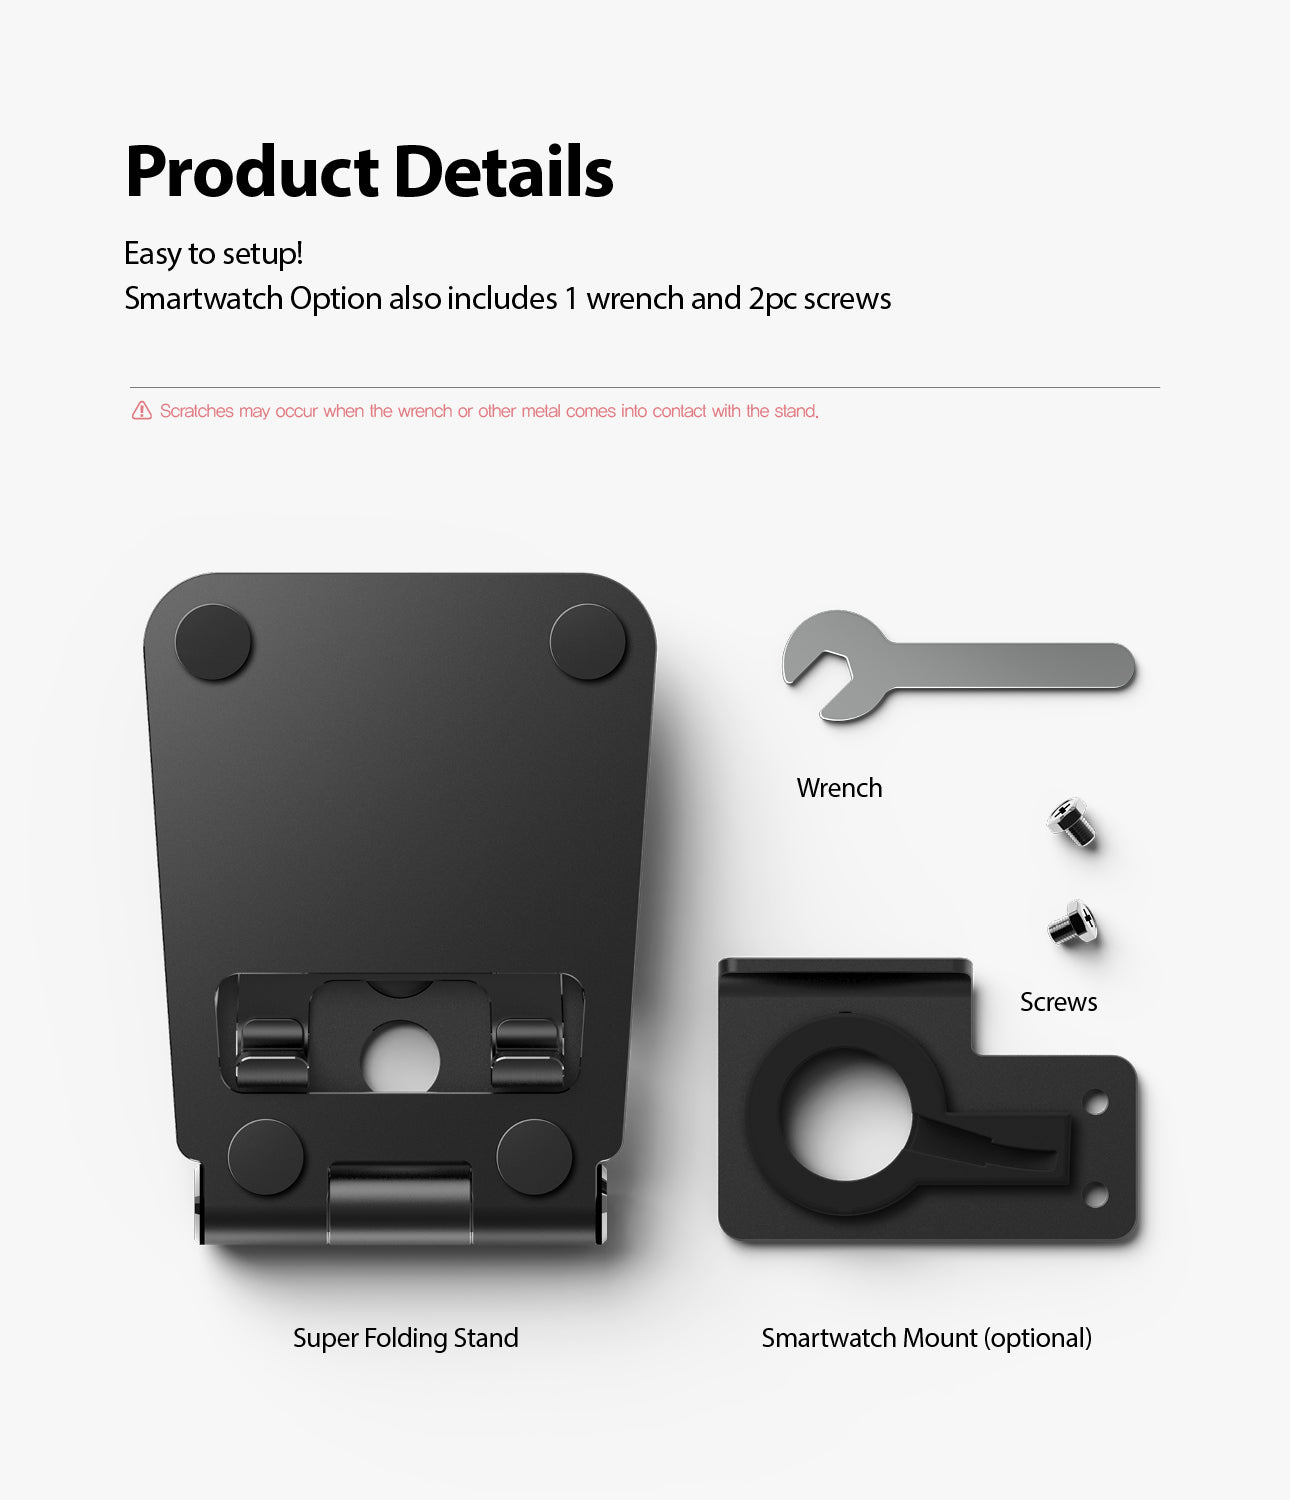 package includes super folding stand, wrench, optional smartwatch mount and screws